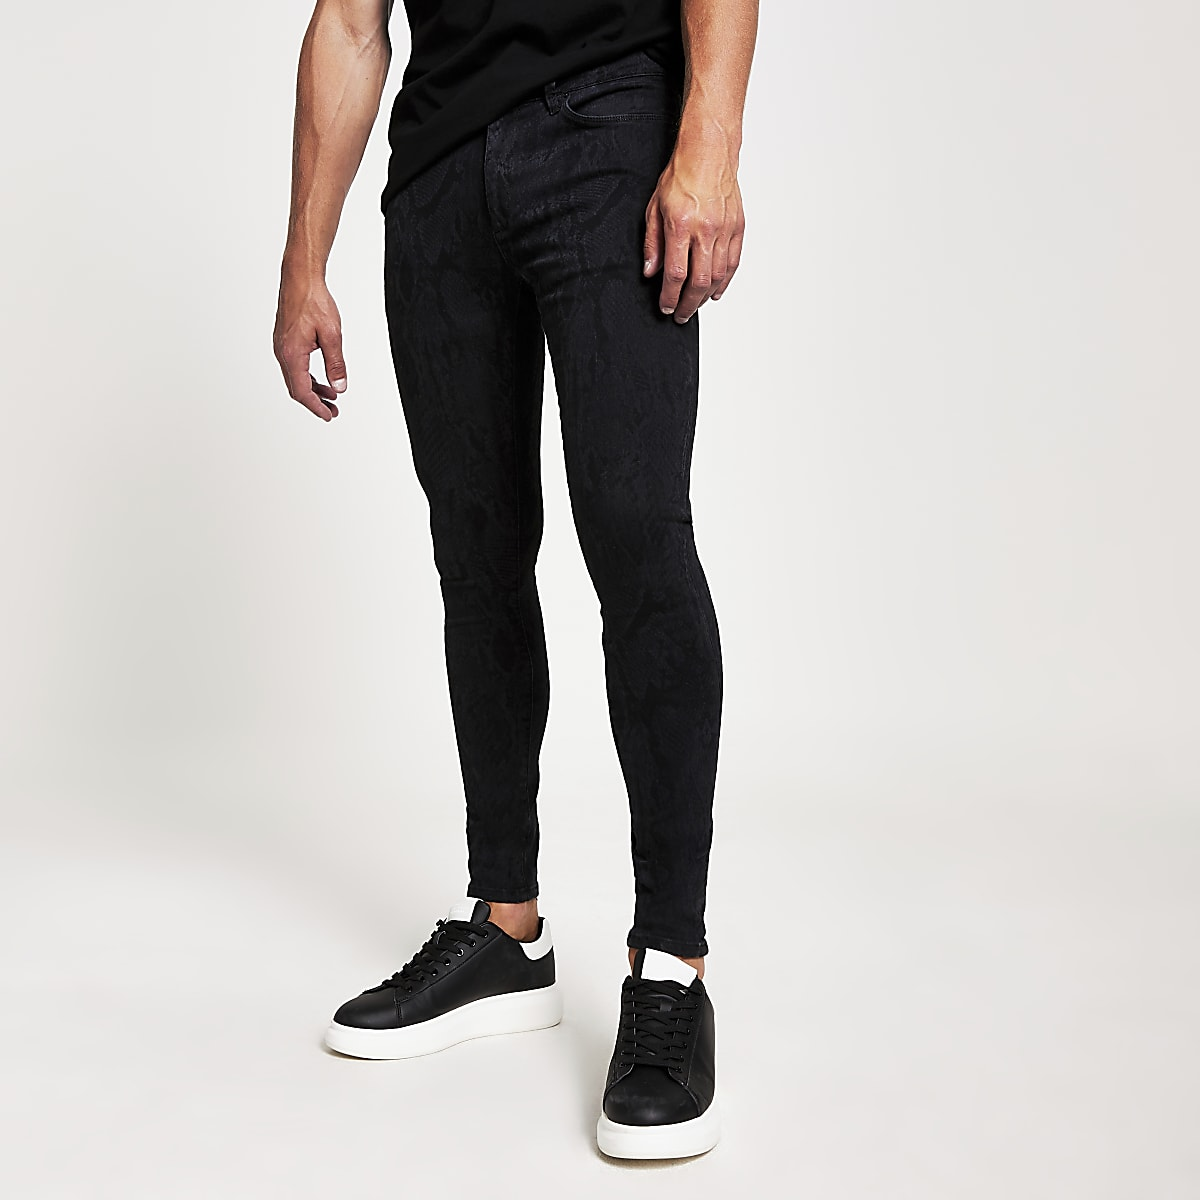 Black snake print spray on Ollie skinny jeans